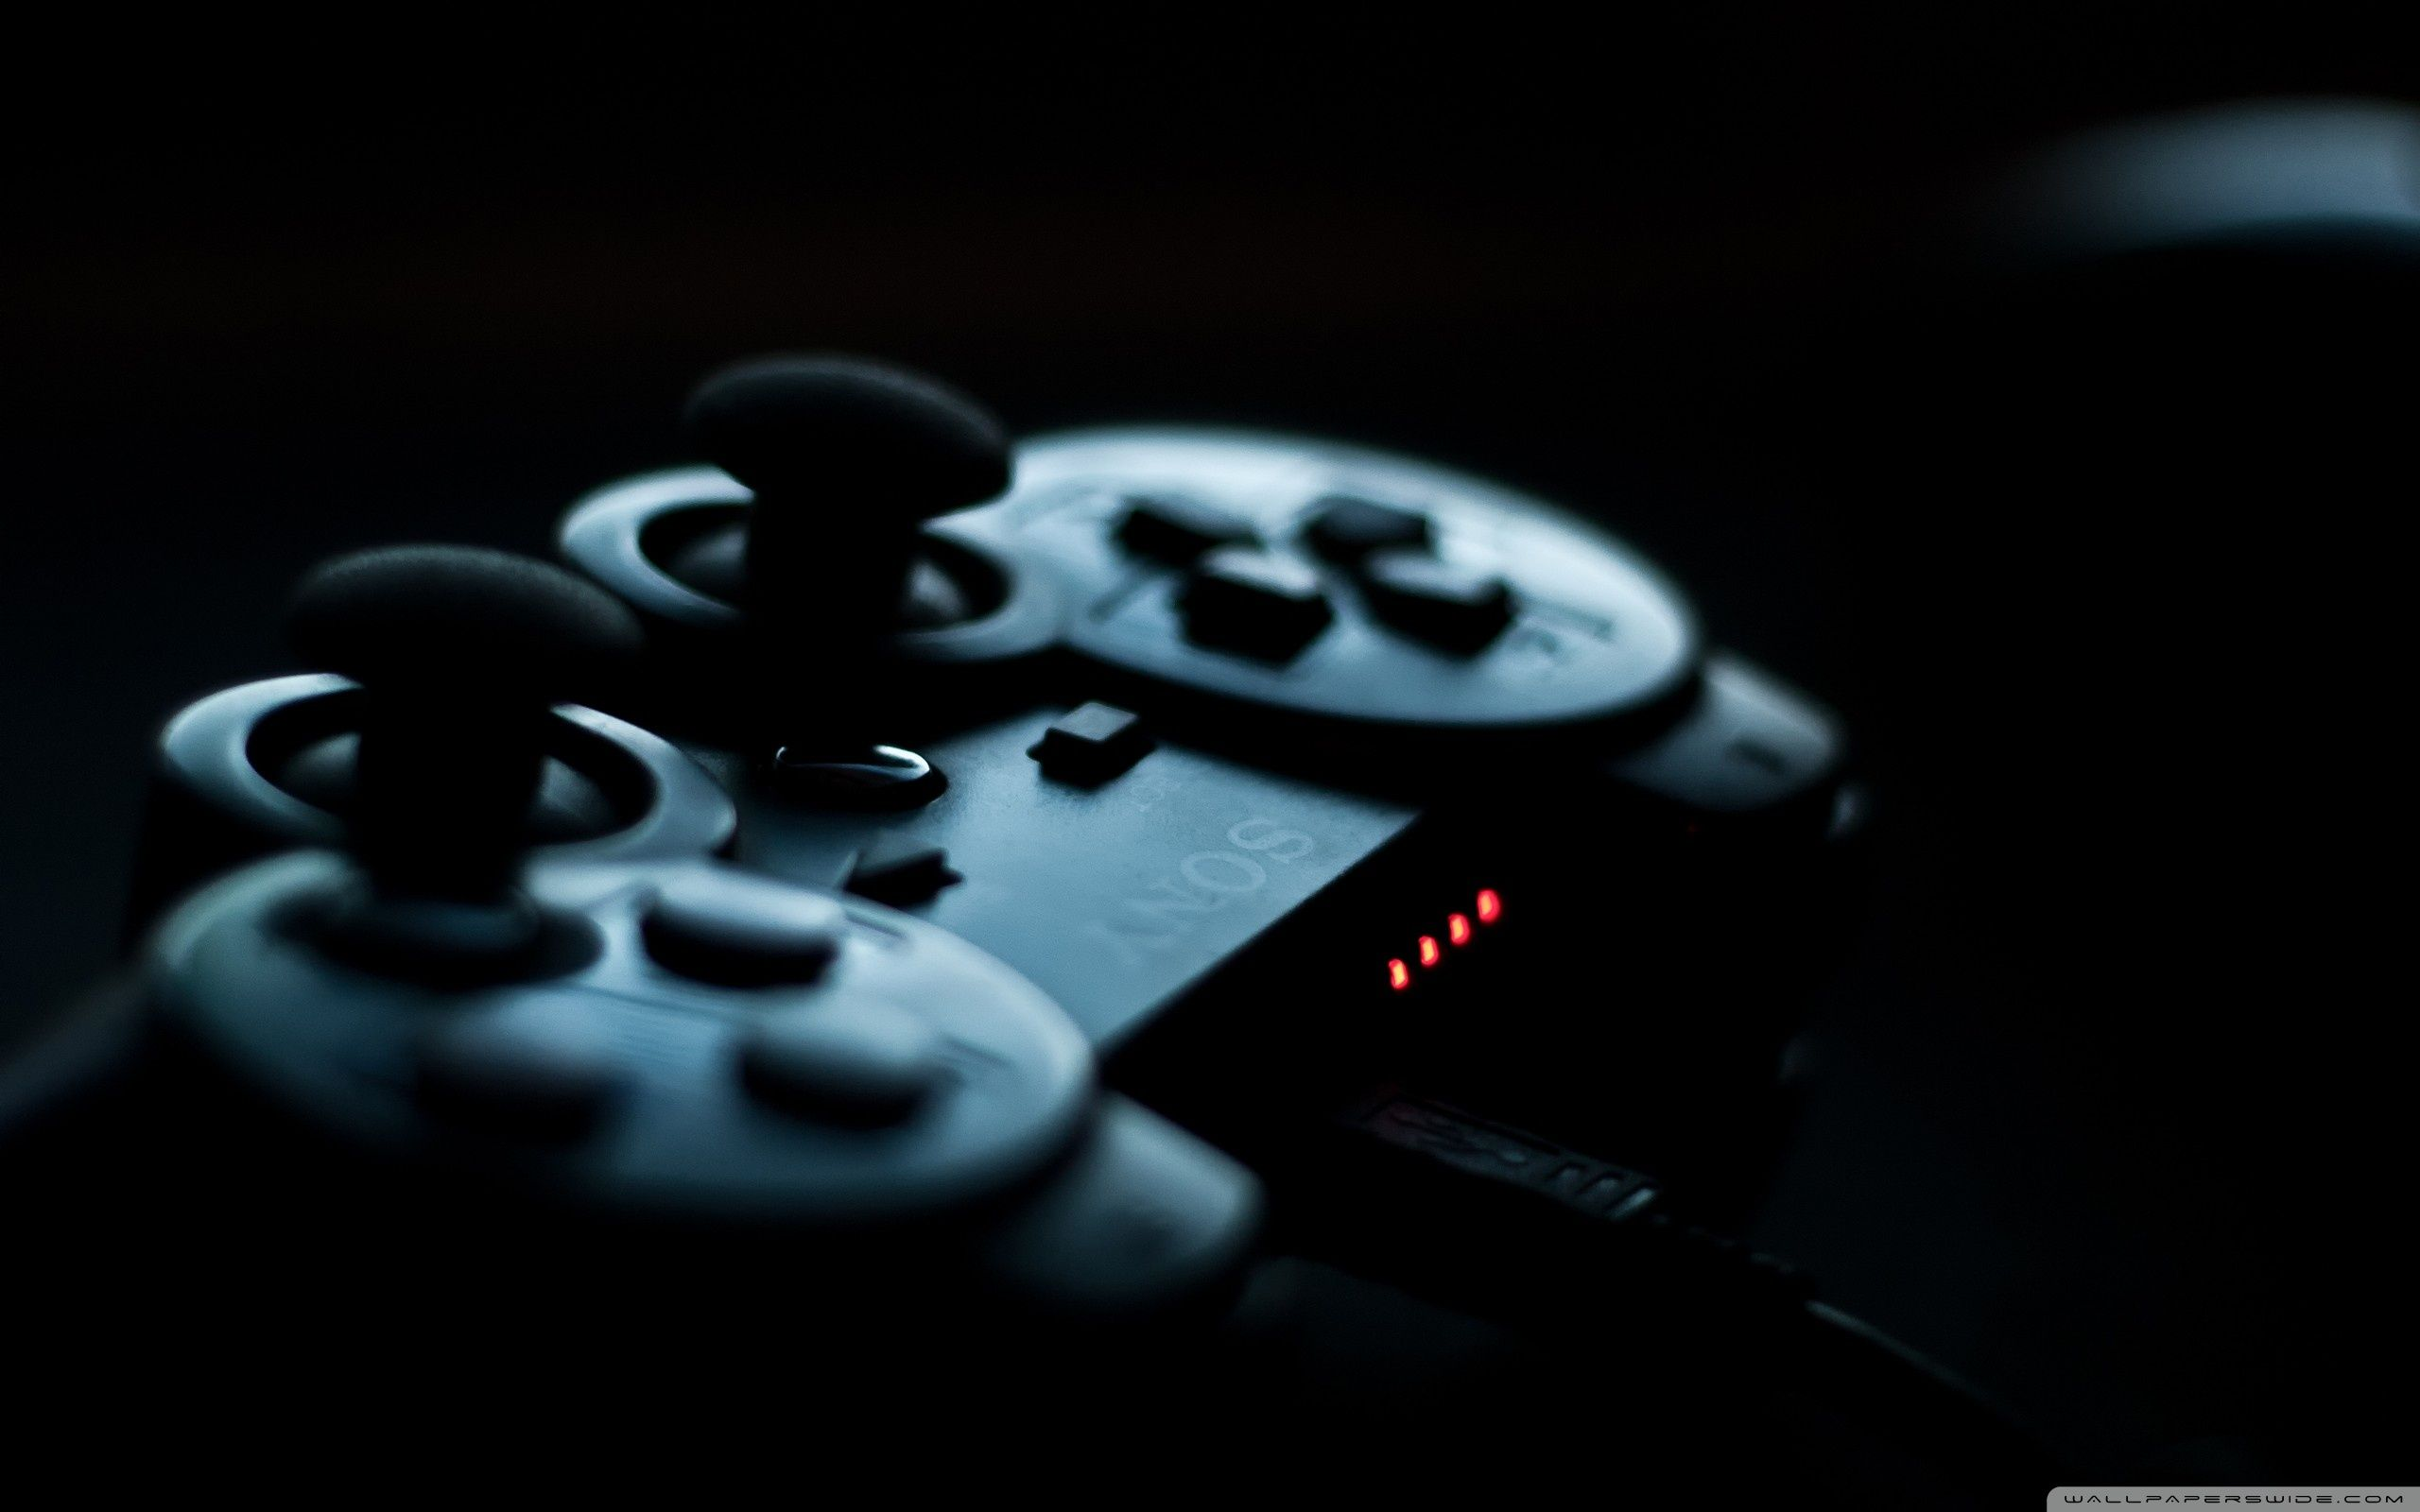 Playstation Controller Wallpapers Top Free Playstation Controller Backgrounds Wallpaperaccess